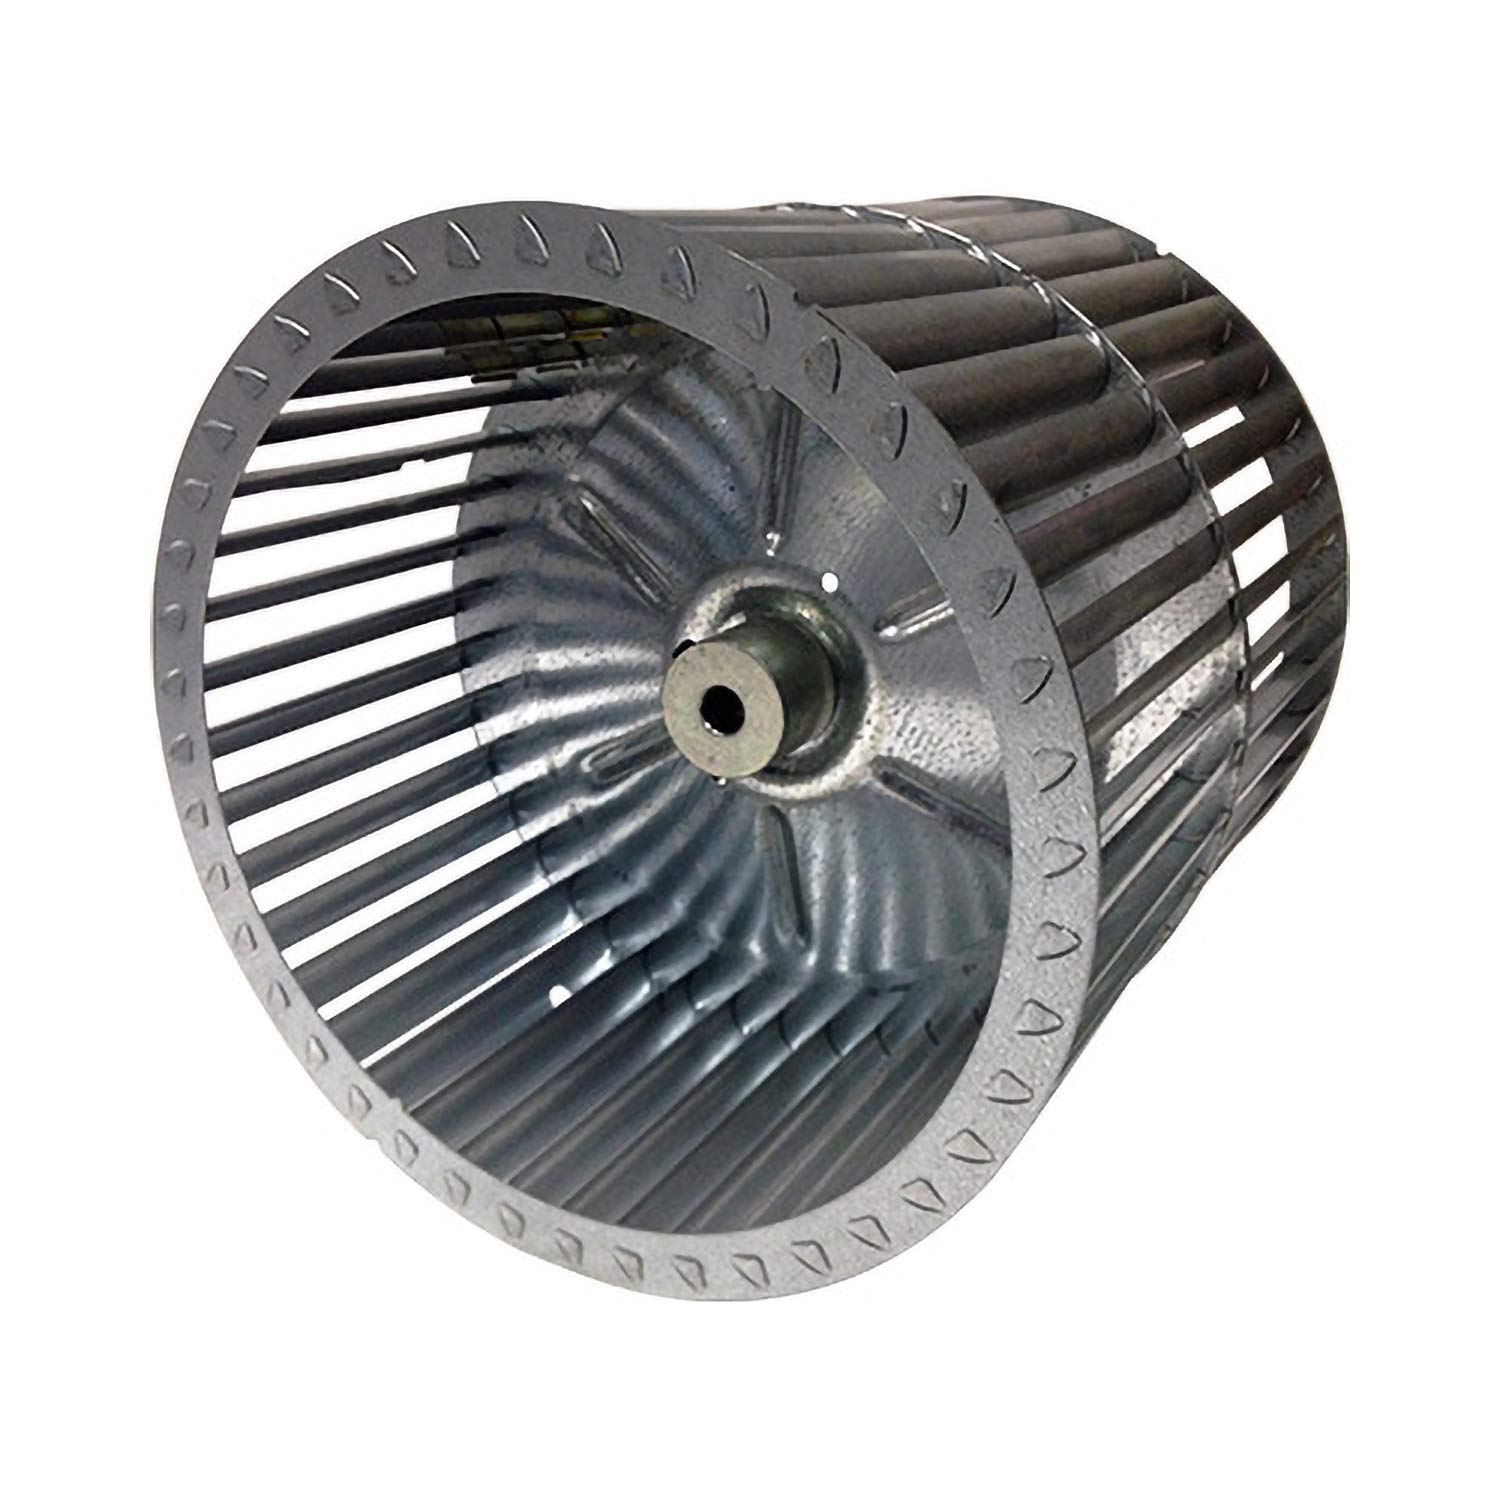 Packard RBW90205 Revcor 5 ☆ popular Ranking TOP14 Double Inlet Blower 9 1 Dia 2 Wheel in.